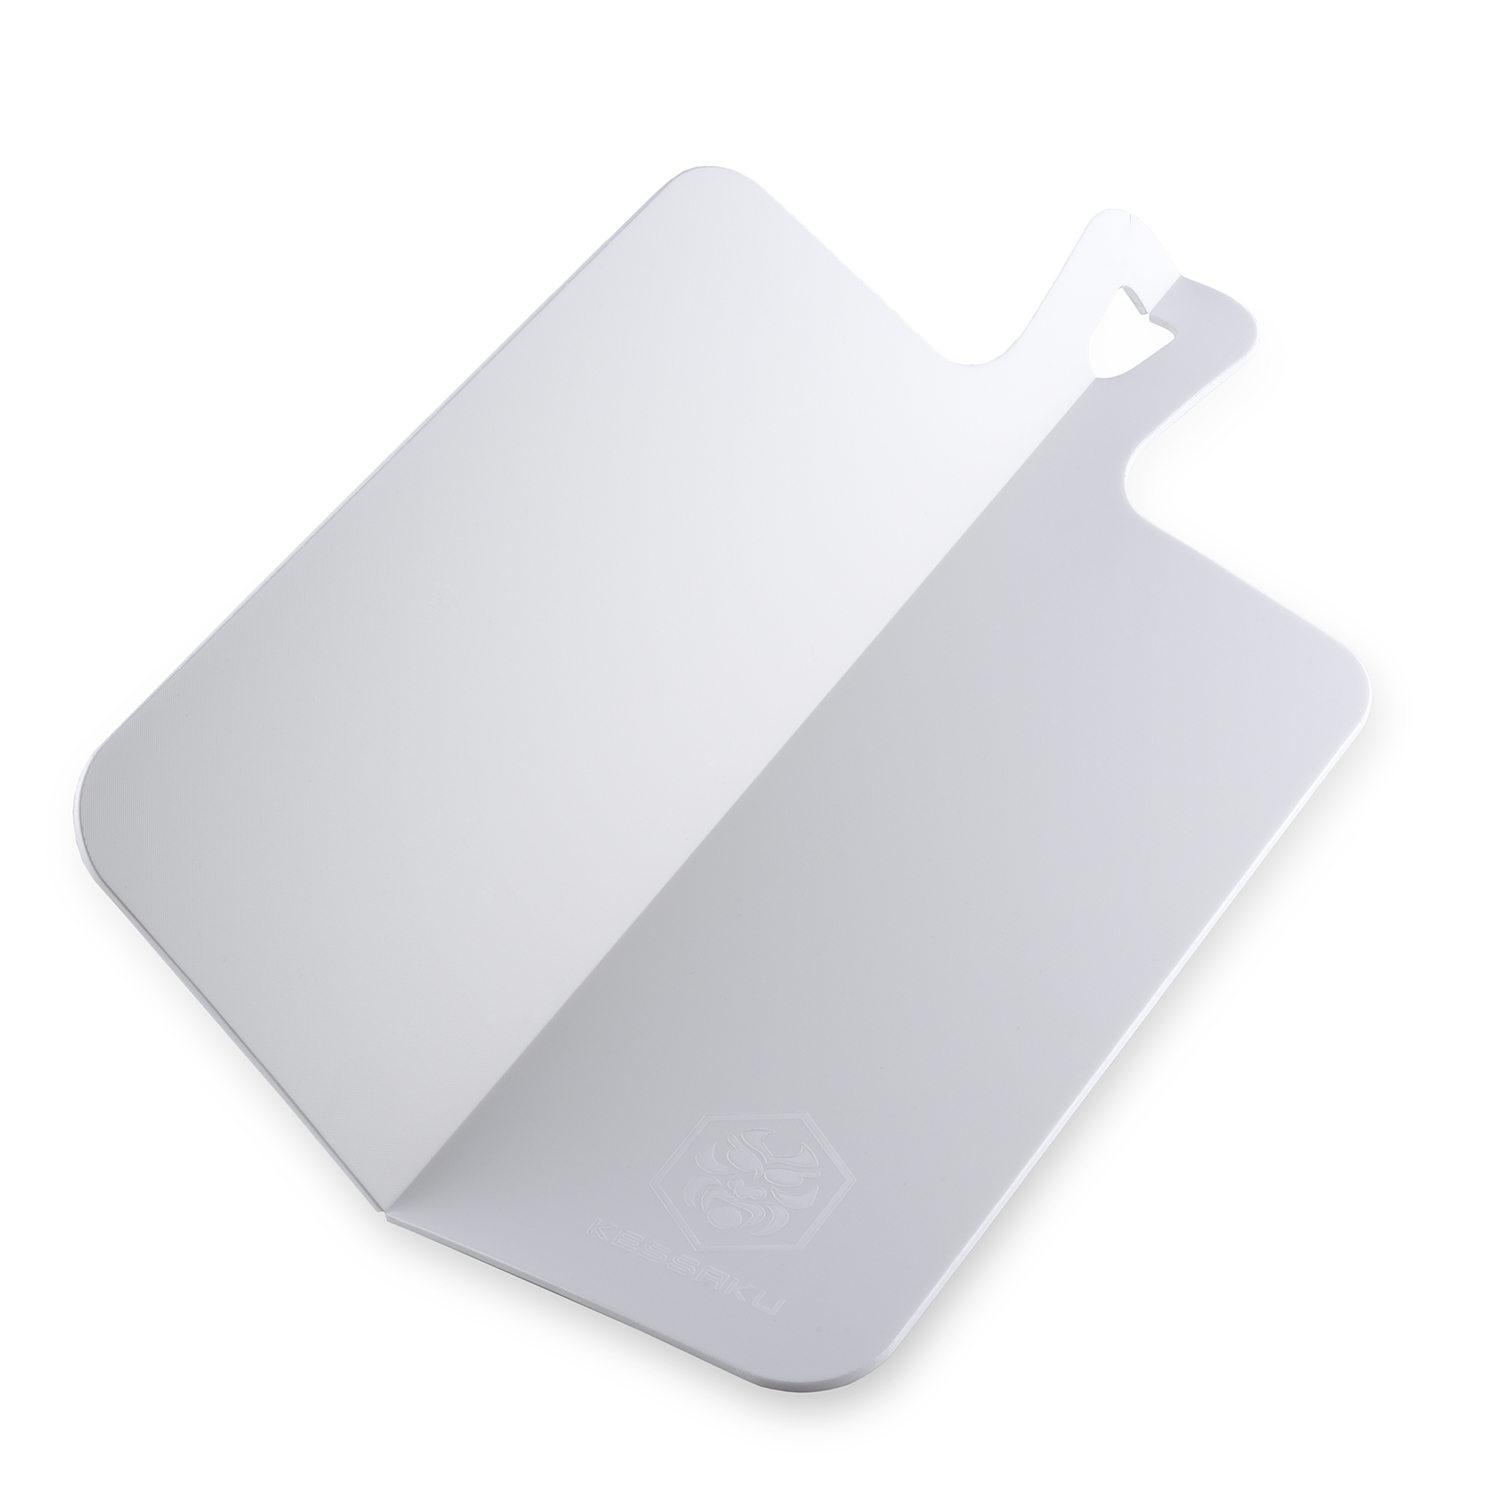 Image for Kessaku Foldable Non-Slip Cutting Board, 3.5MM Ultra Thick, Lightweight -10.25 X 15.5 from Circuit City